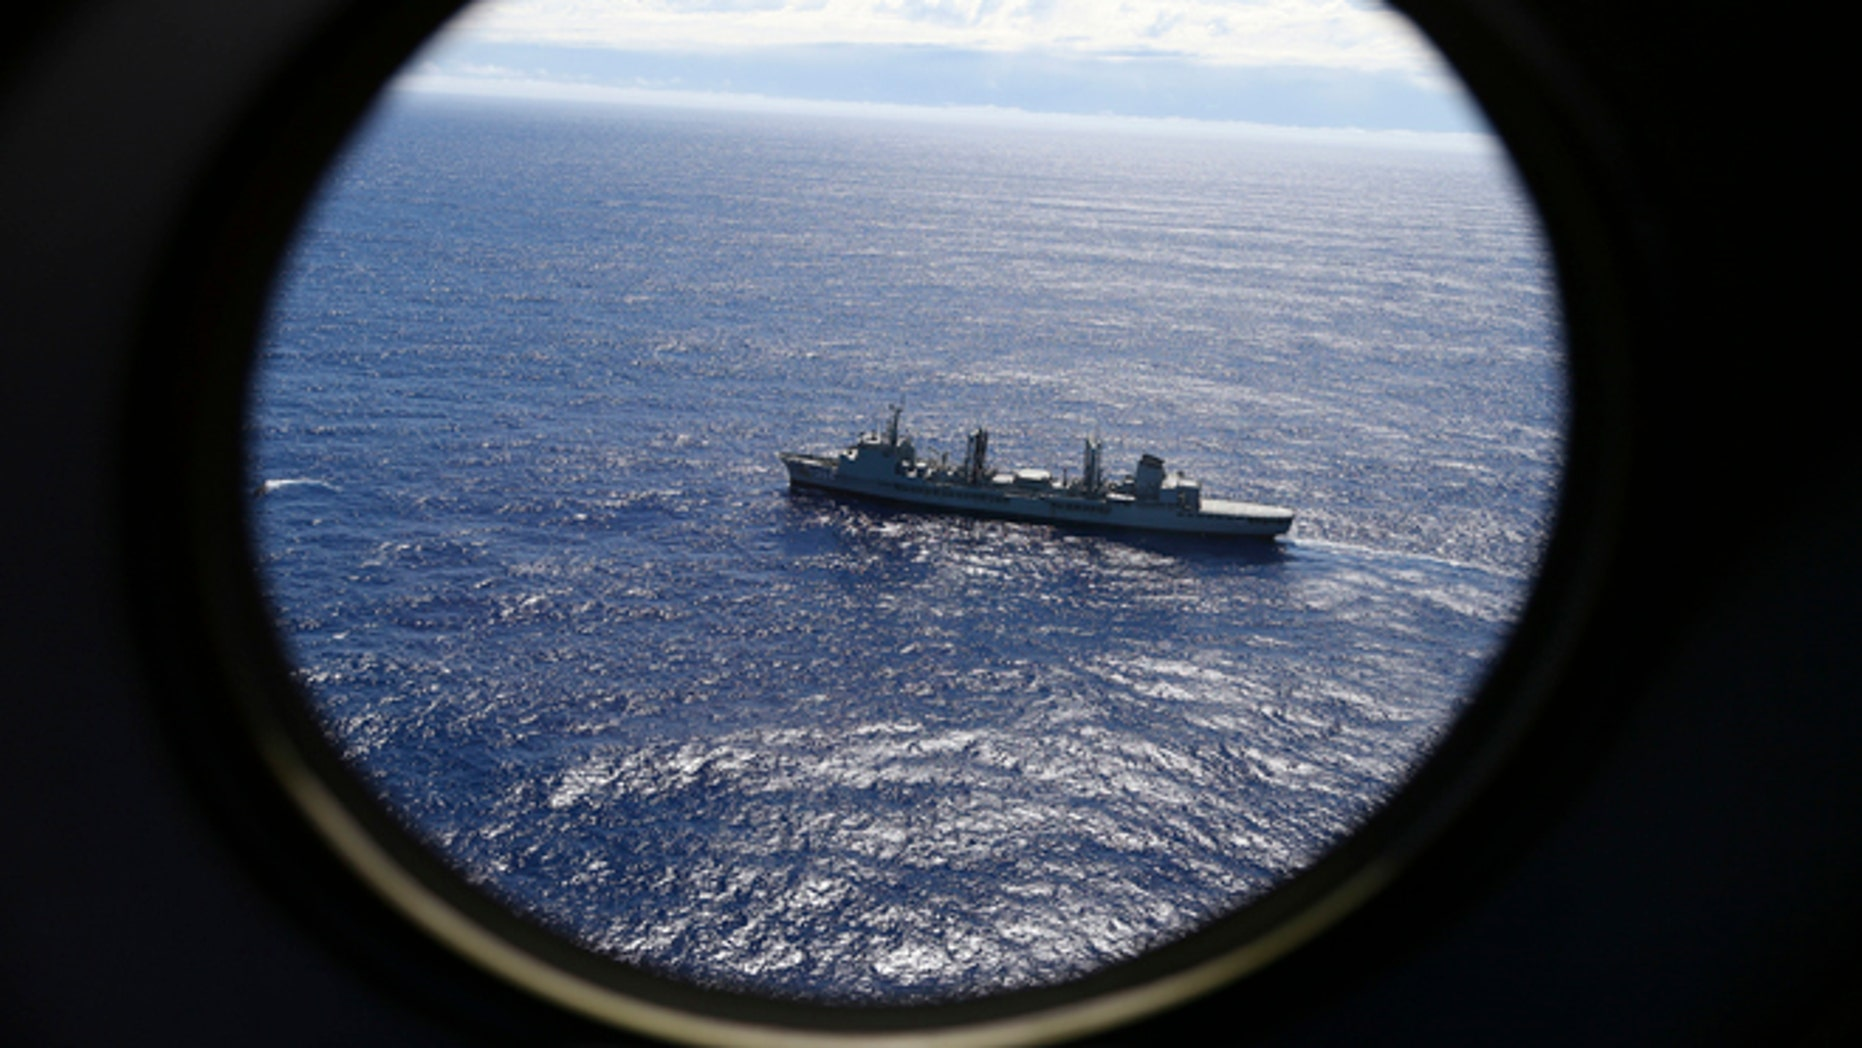 FILE - In this March 31, 2014, file photo, HMAS Success scans the southern Indian Ocean, near the coast of Western Australia, as a Royal New Zealand Air Force P3 Orion flies over, while searching for missing Malaysia Airlines Flight MH370.